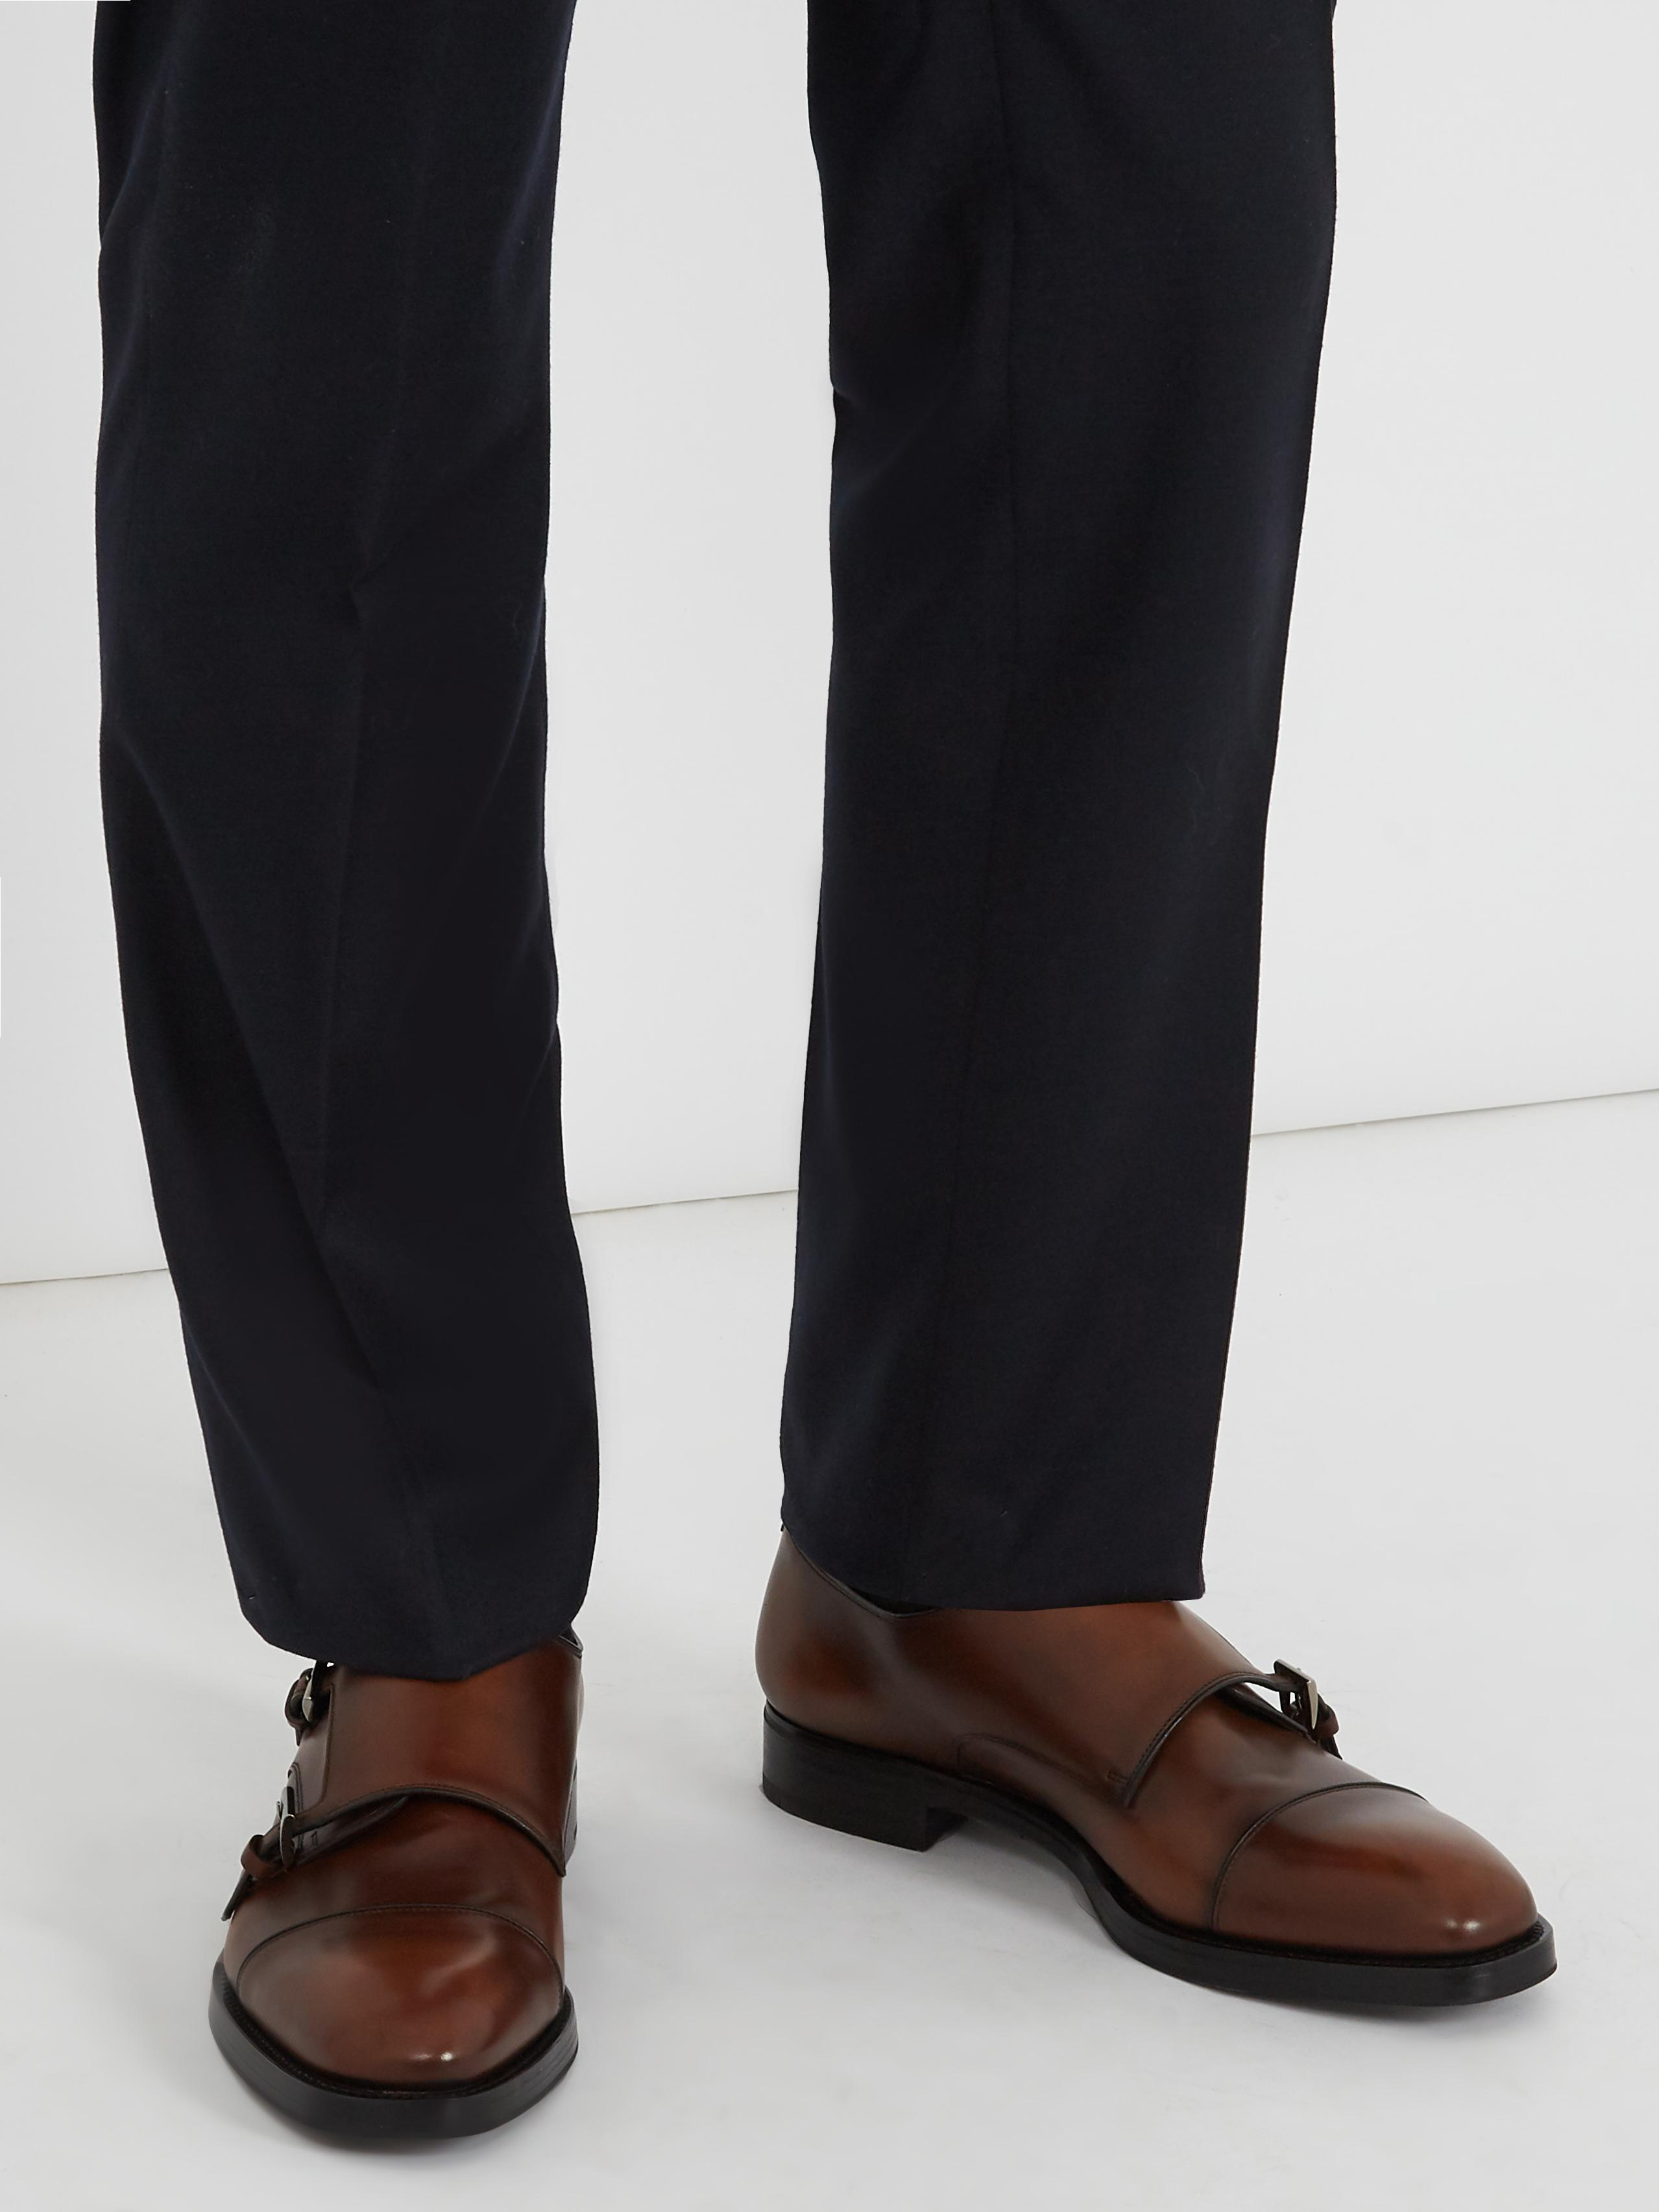 Prada Double Monk-strap Leather Shoes